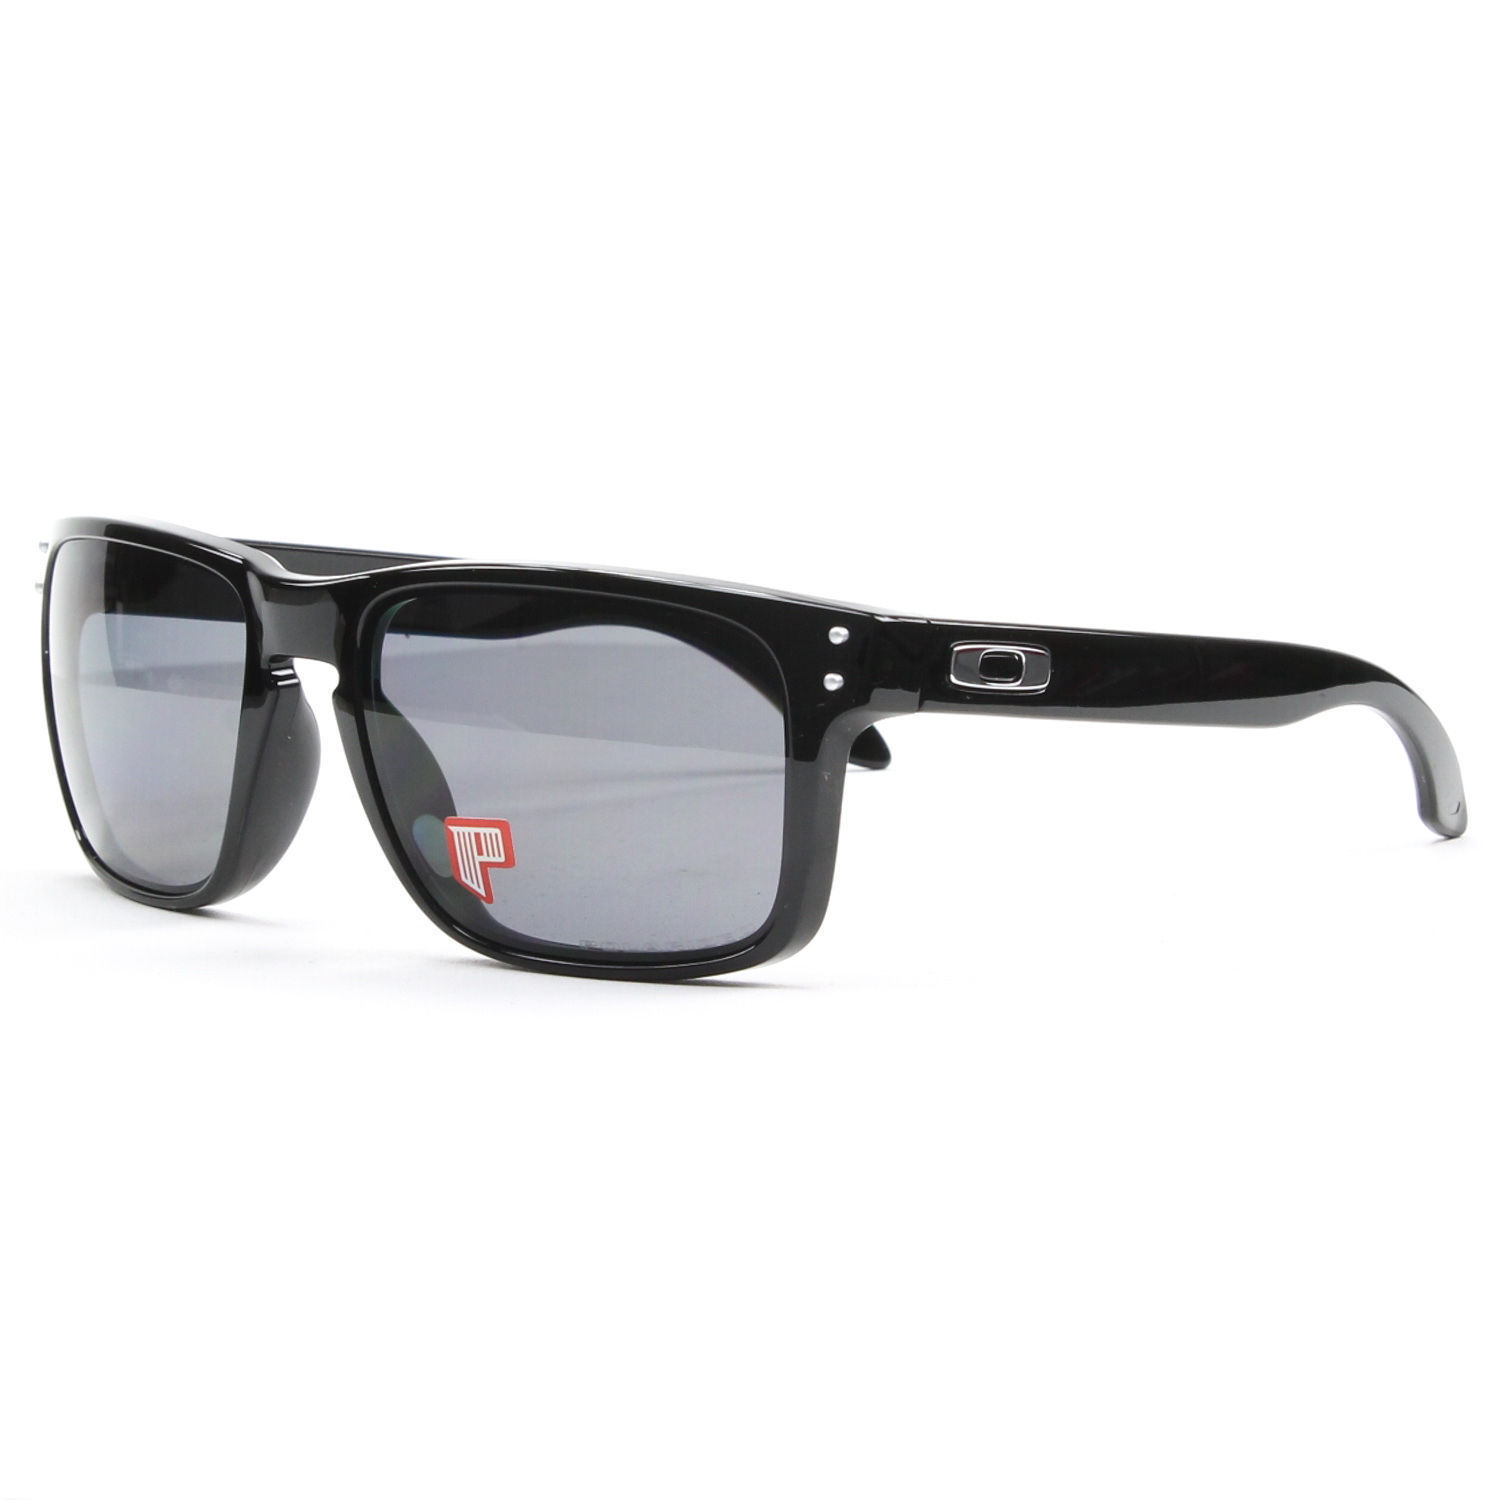 New Oakley Holbrook Polished Black Grey and 5 similar items bbfbdf068c